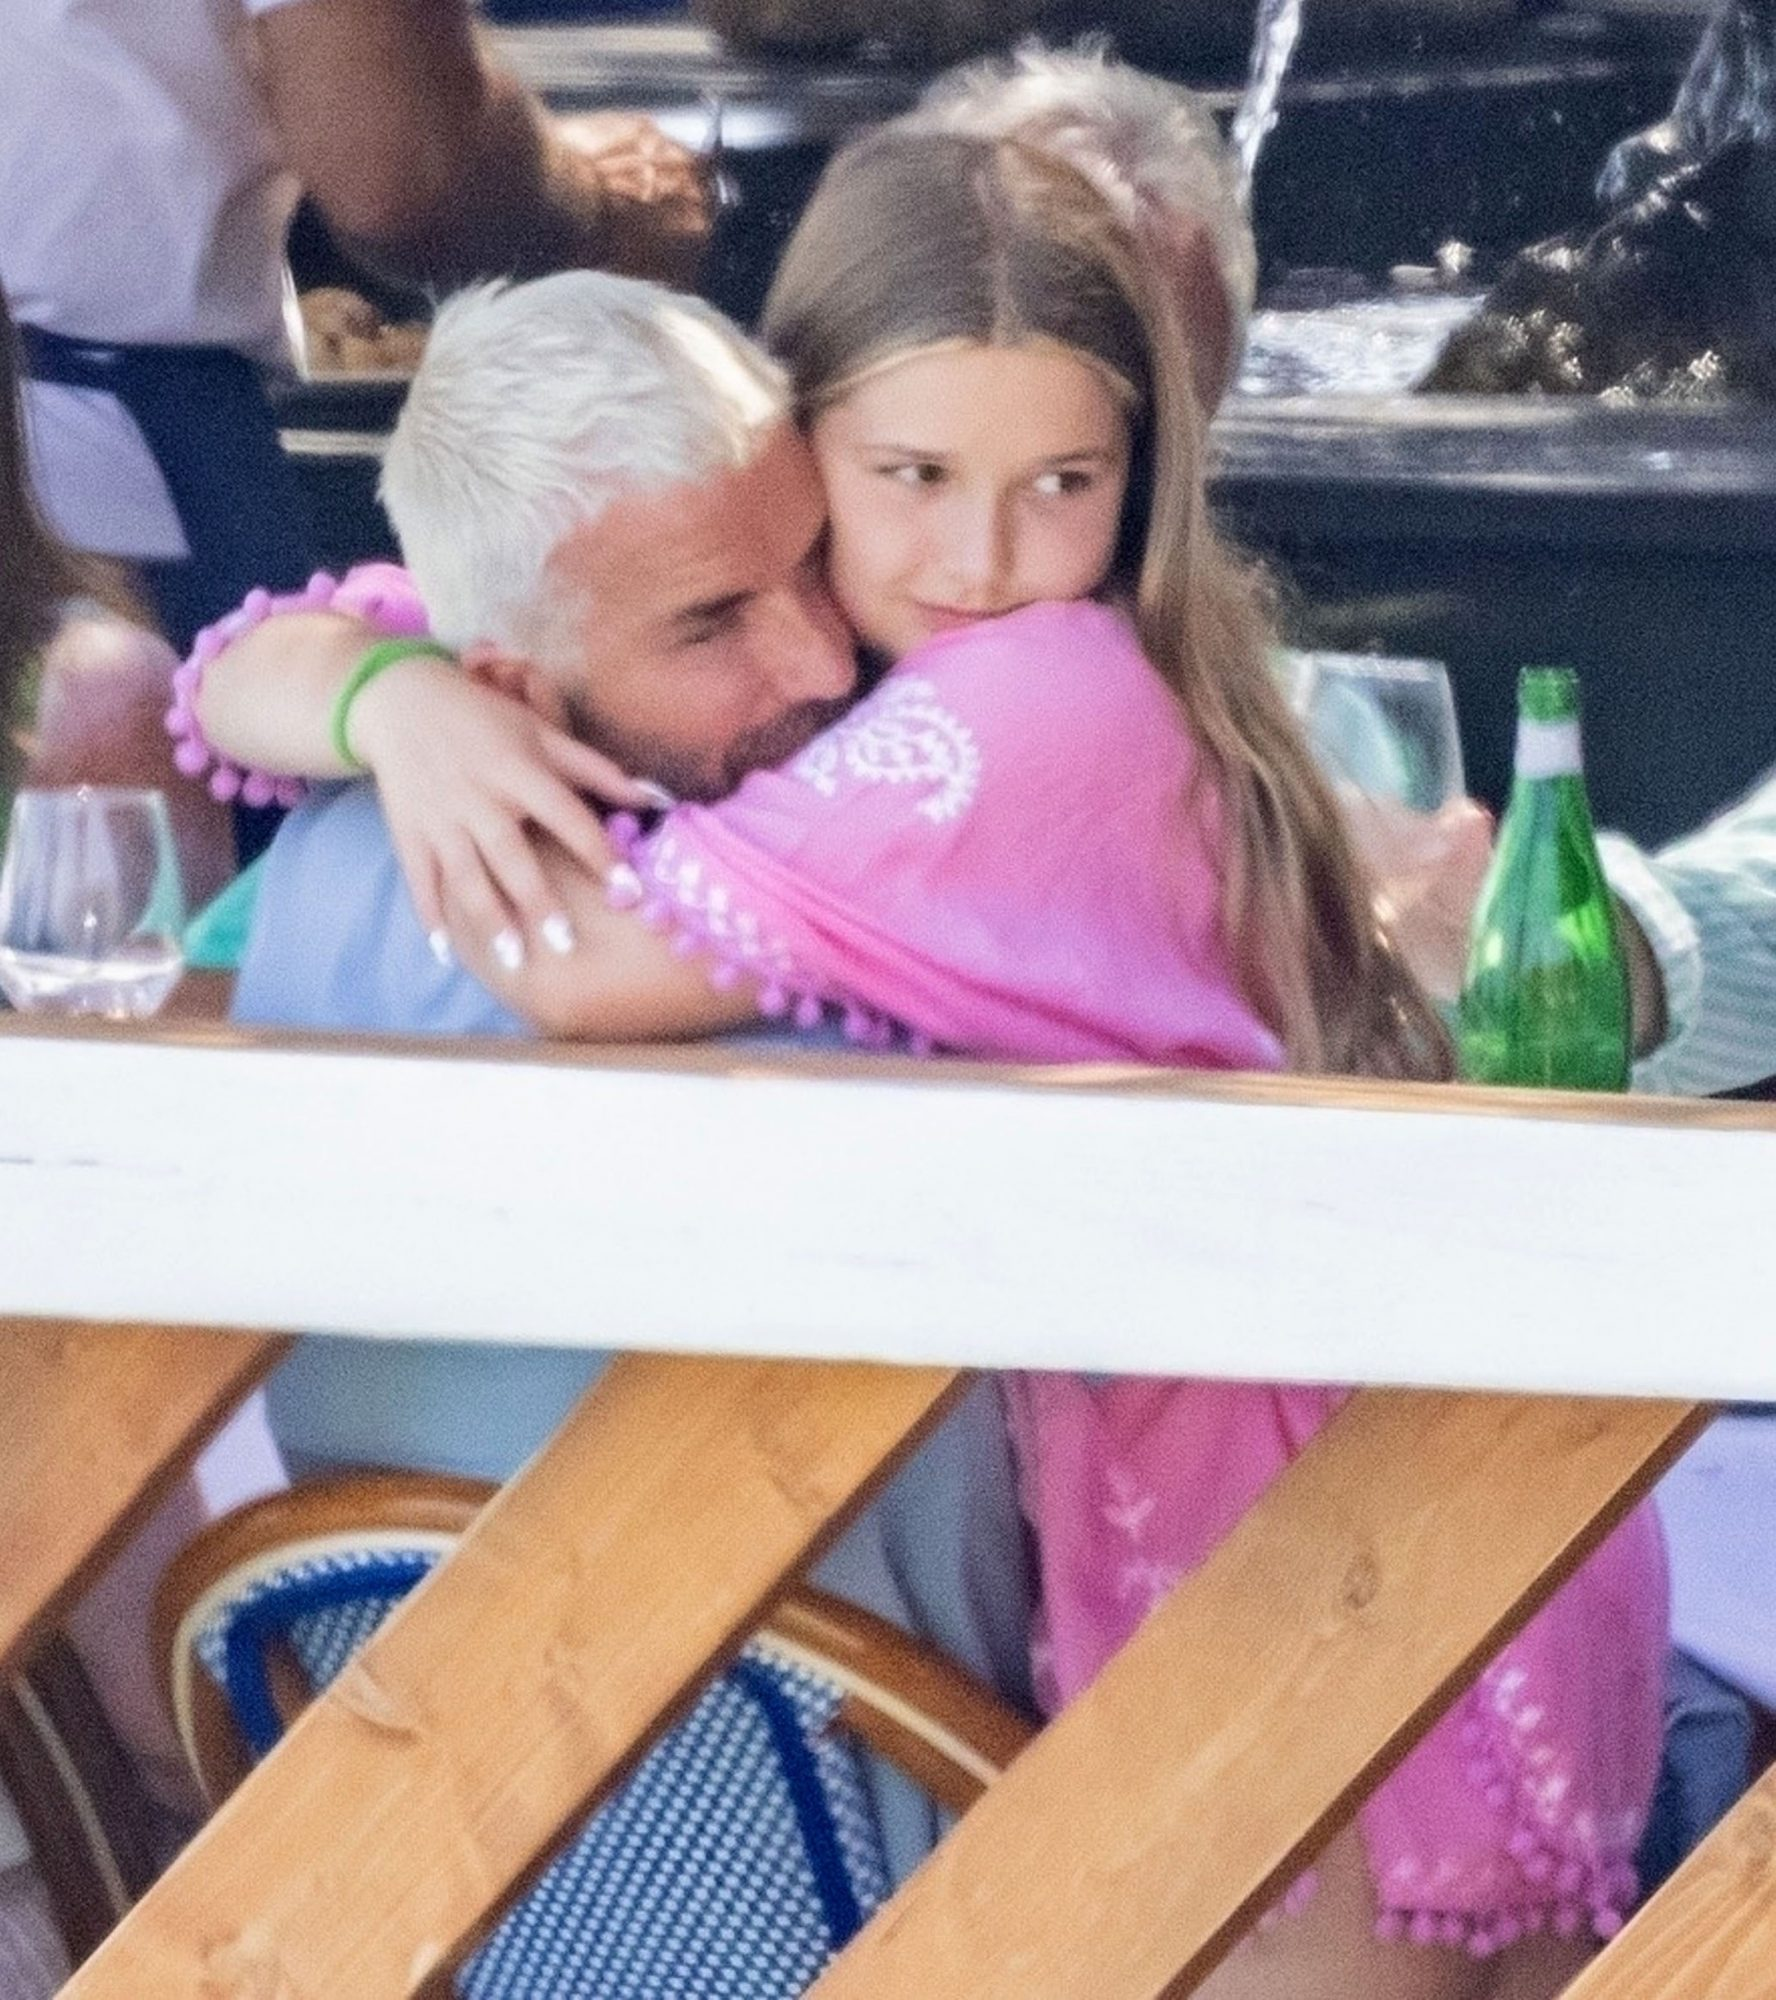 David Beckham Cuddles With Daughter Harper On Family Dinner Out In Positano